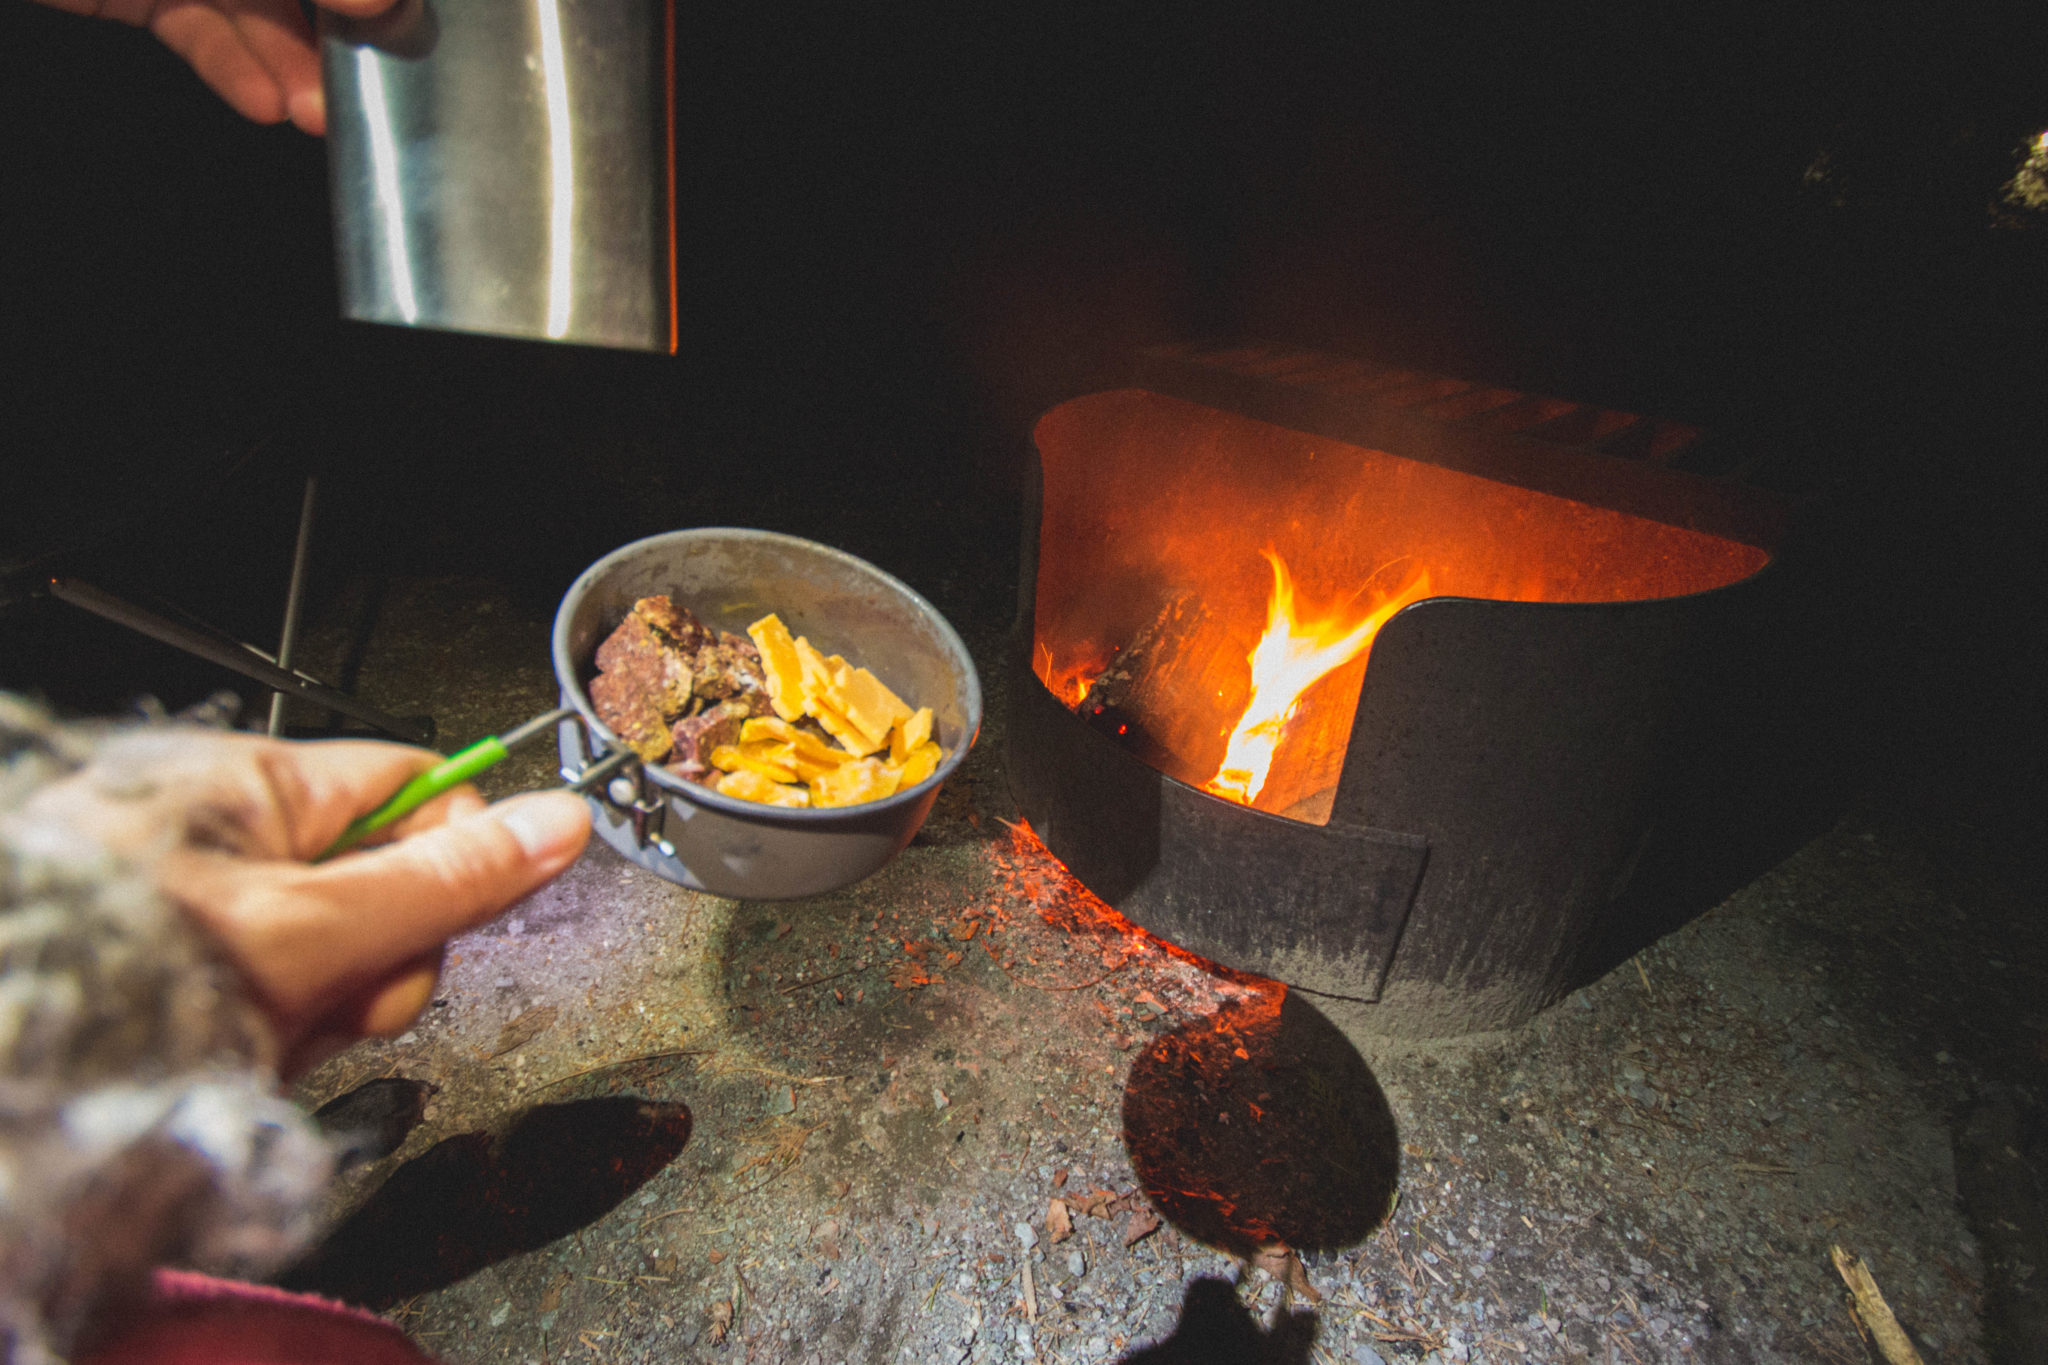 Campfire food, winter camping at porteau cove